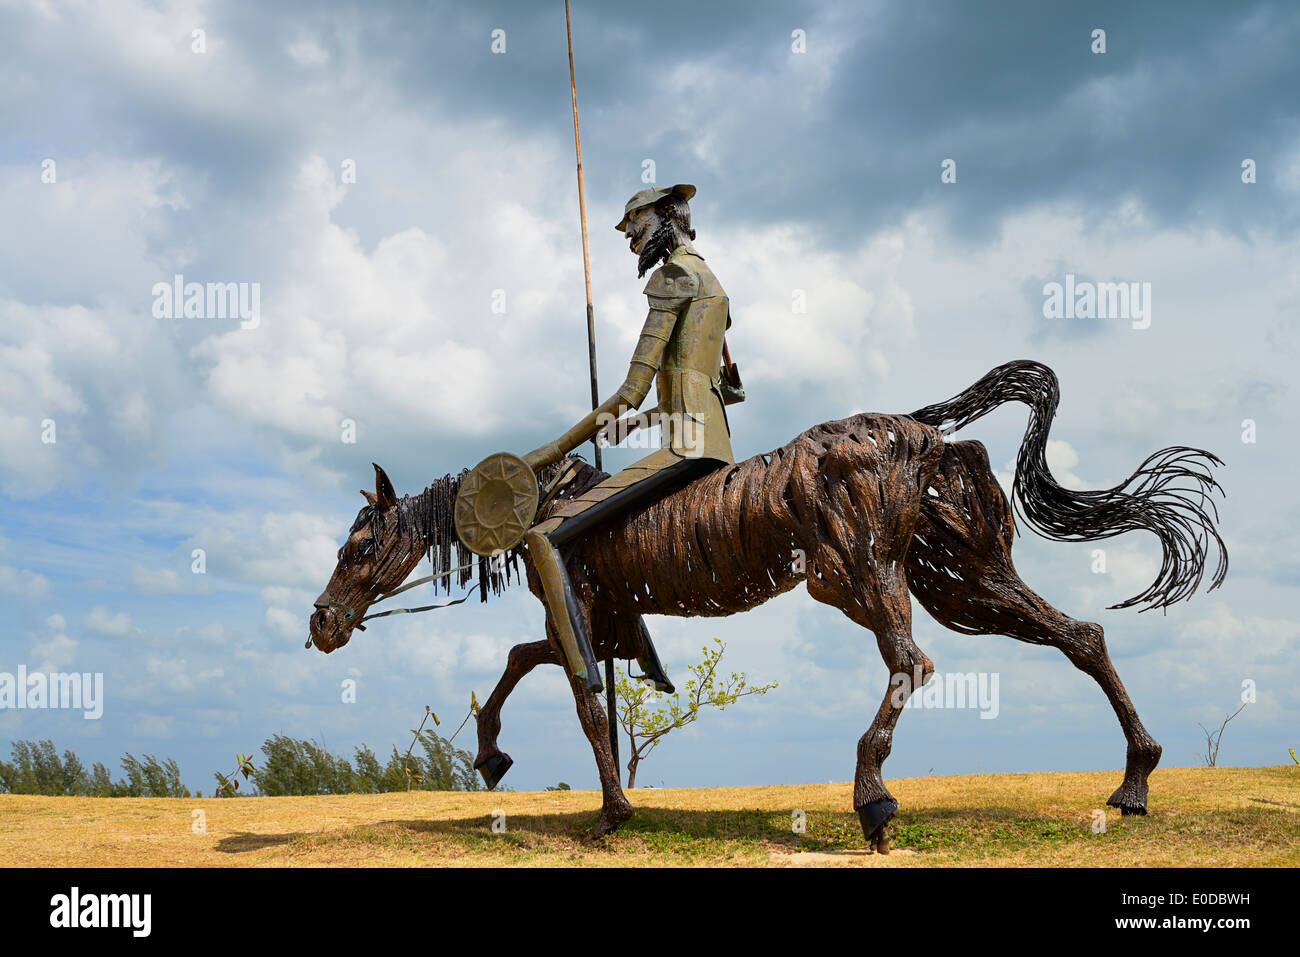 Don Quixote Sculpture Stock Photos & Don Quixote Sculpture Stock ...